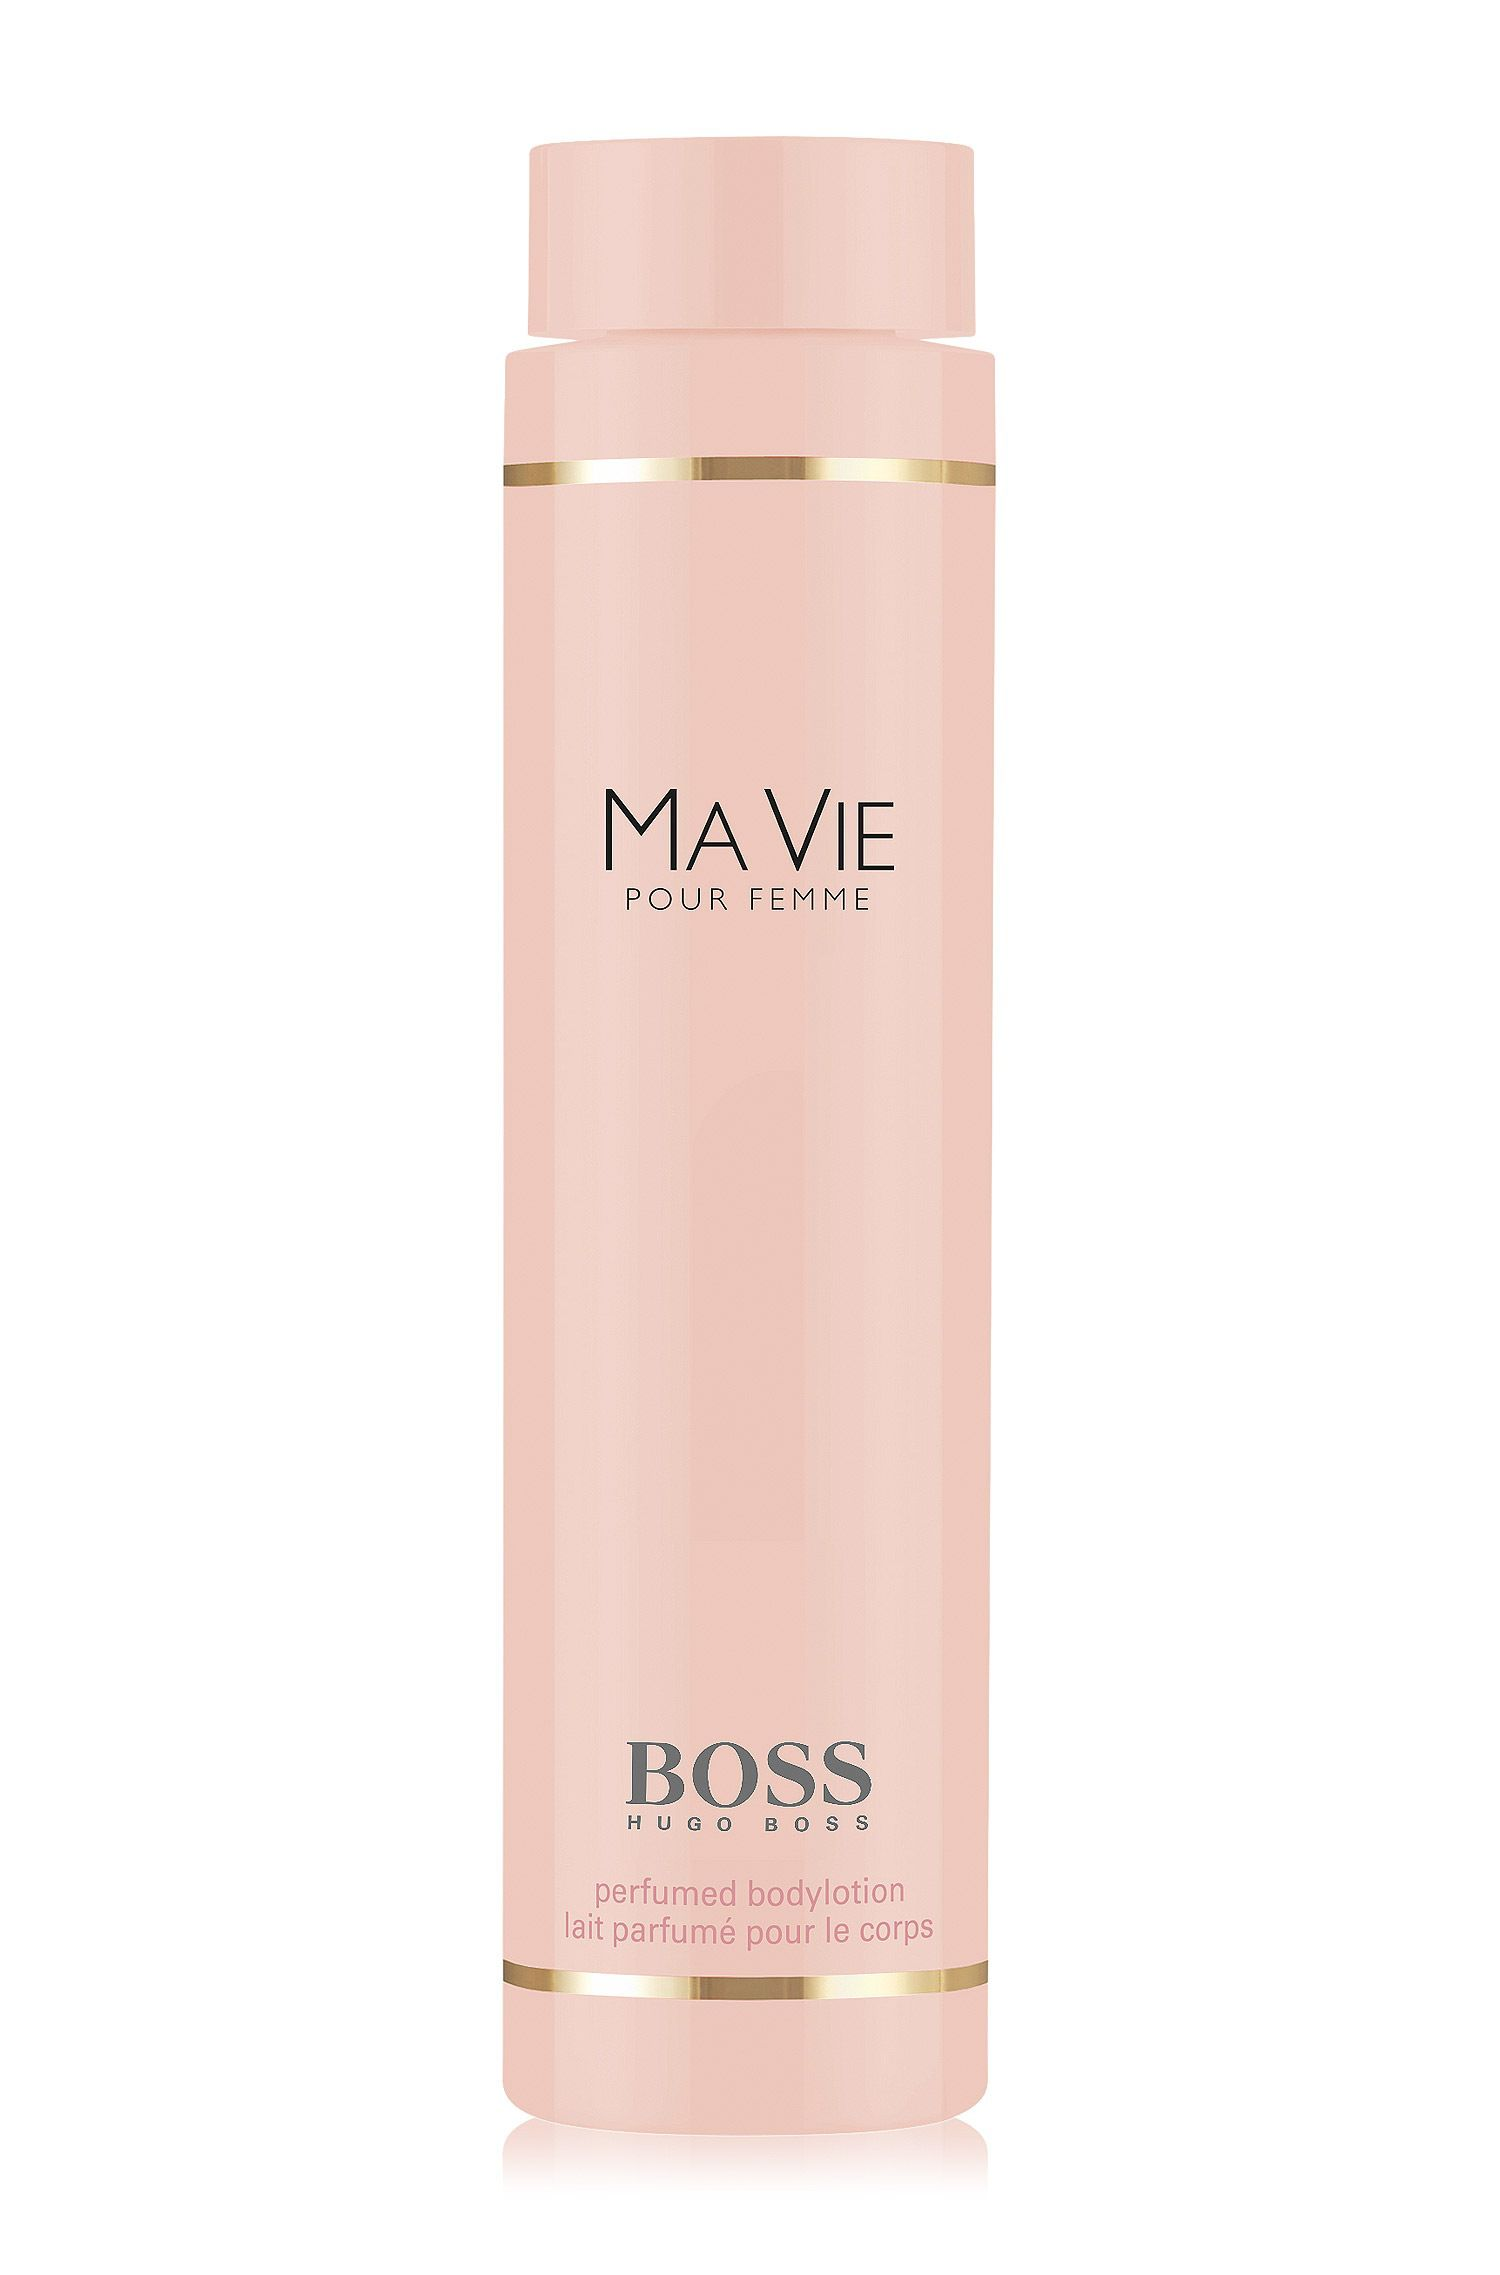 BOSS Ma Vie Pour Femme Bodylotion 200ml, Assorted-Pre-Pack